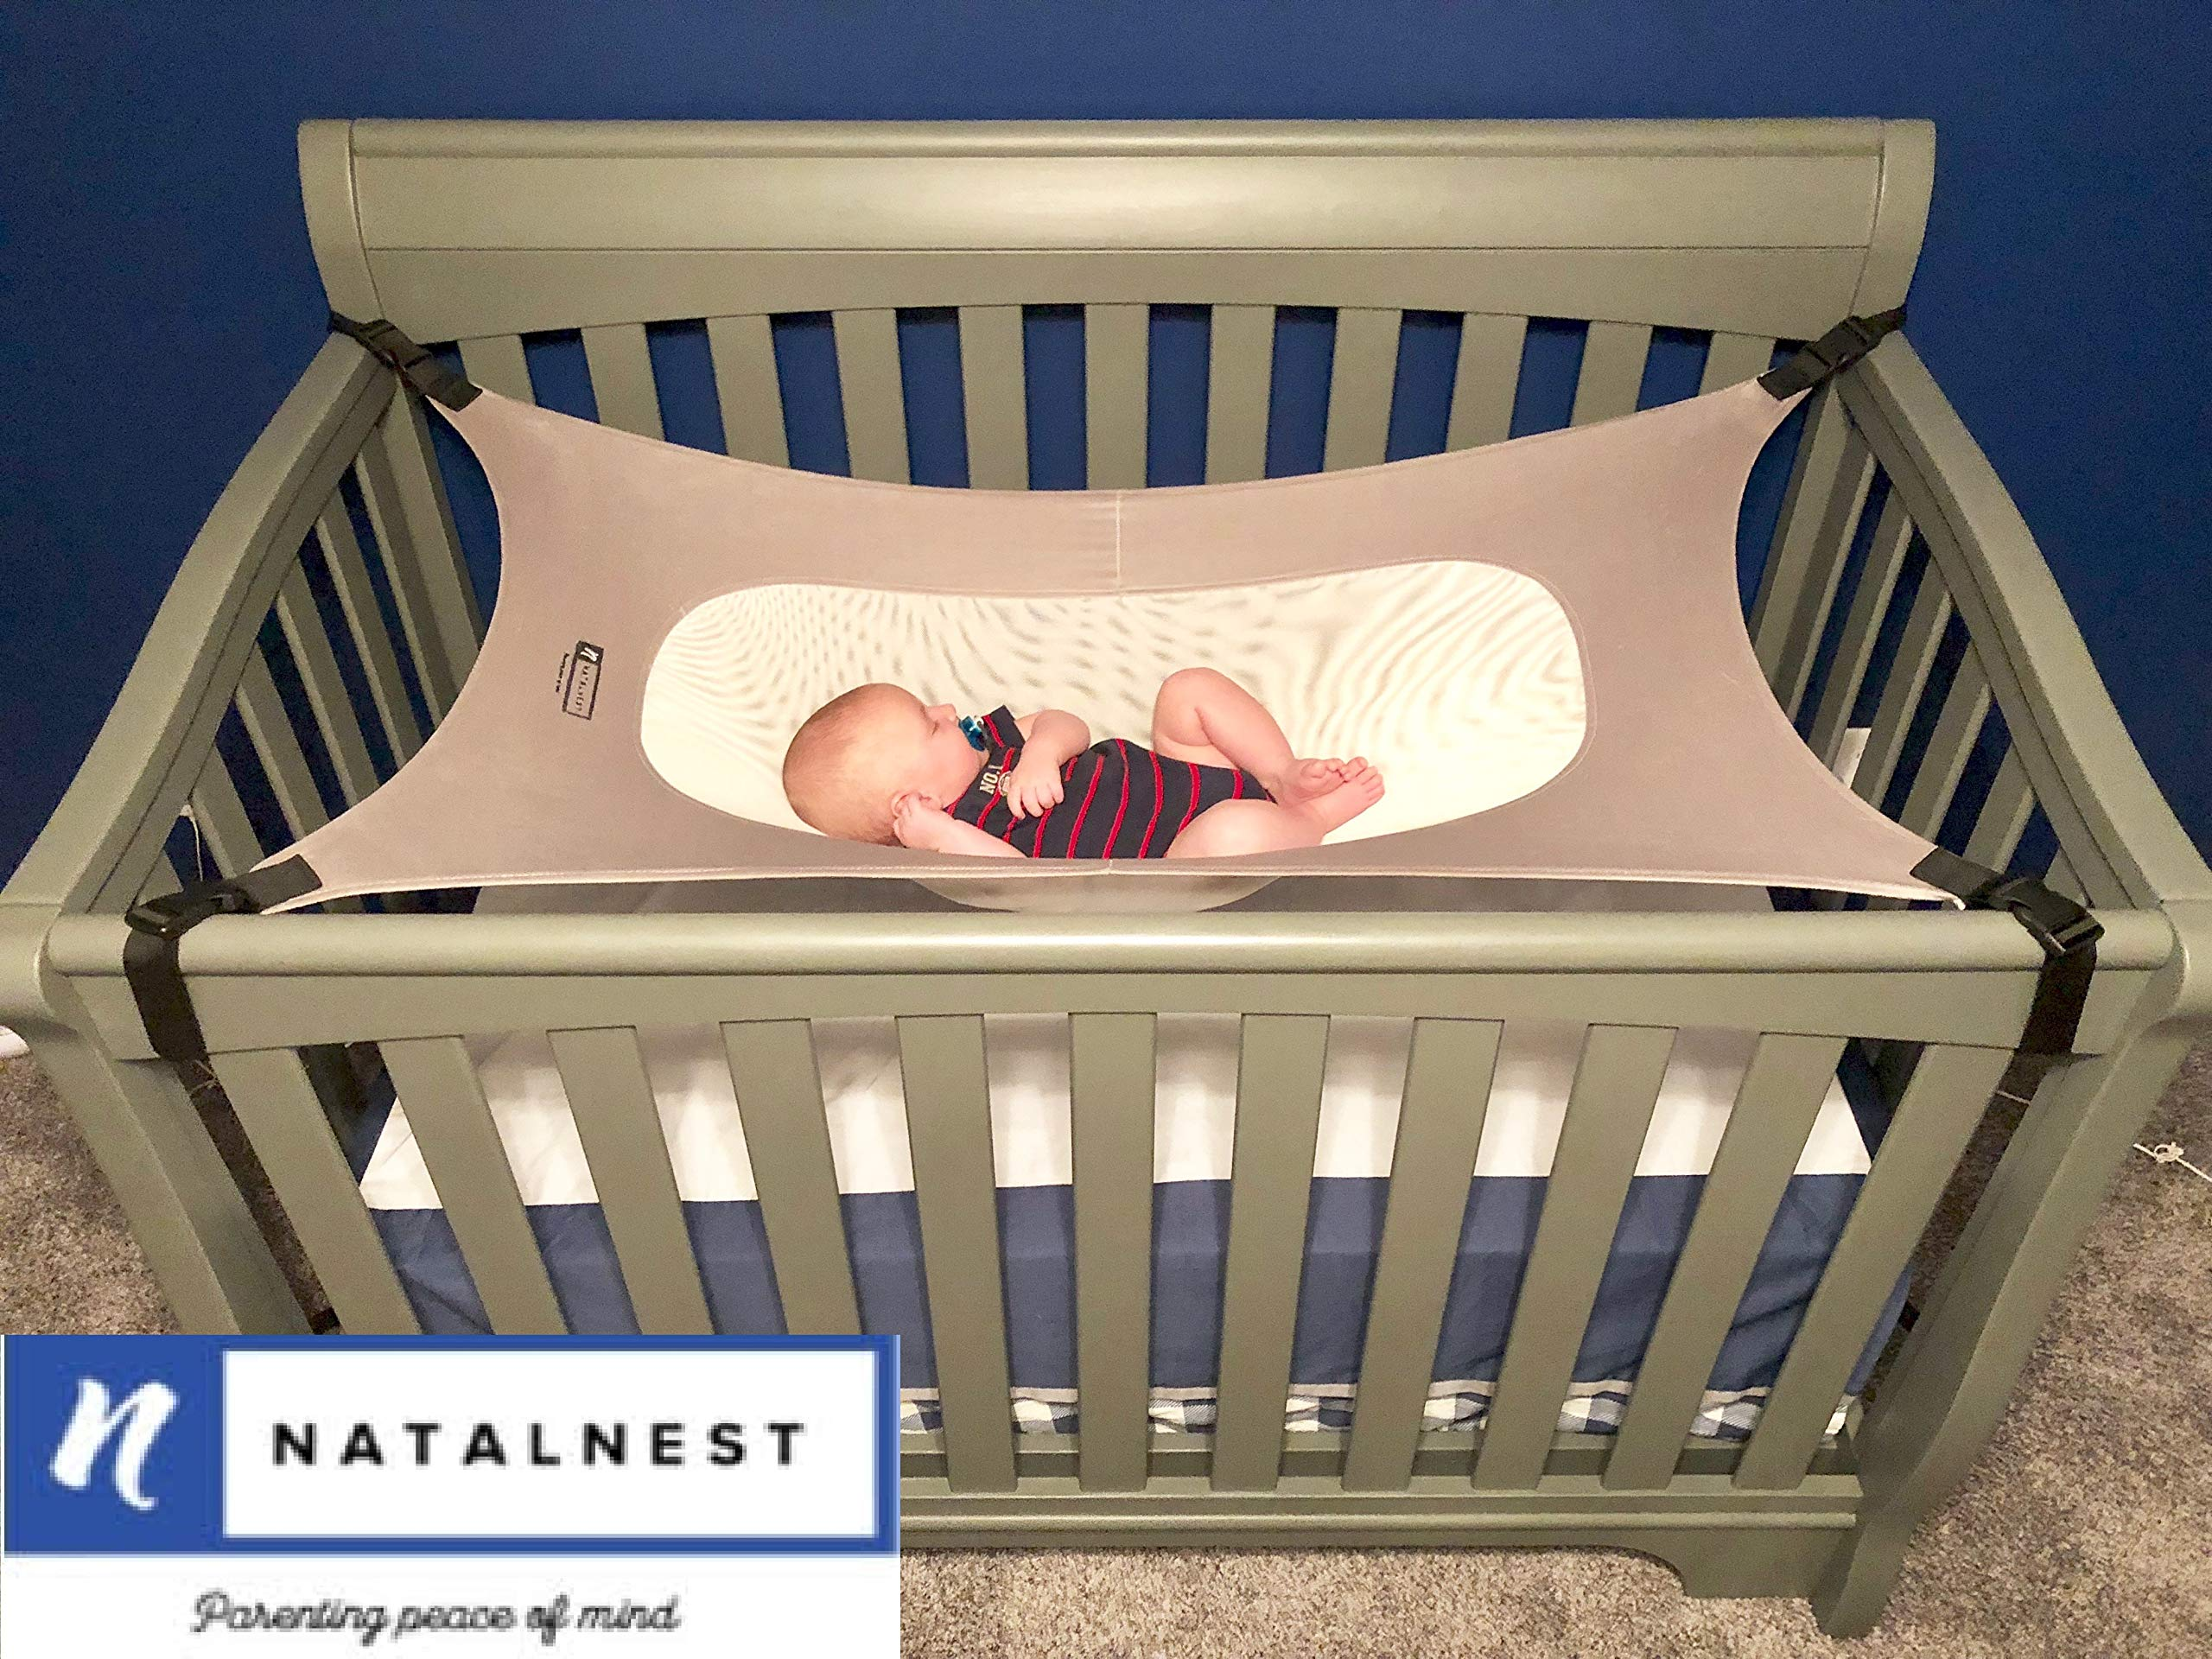 Natal Nest Baby Crib Hammock, Premium Breathable Materials, Quality Ensured Infant Nursery Bed for Infants 0-9 Months. by Natal Nest